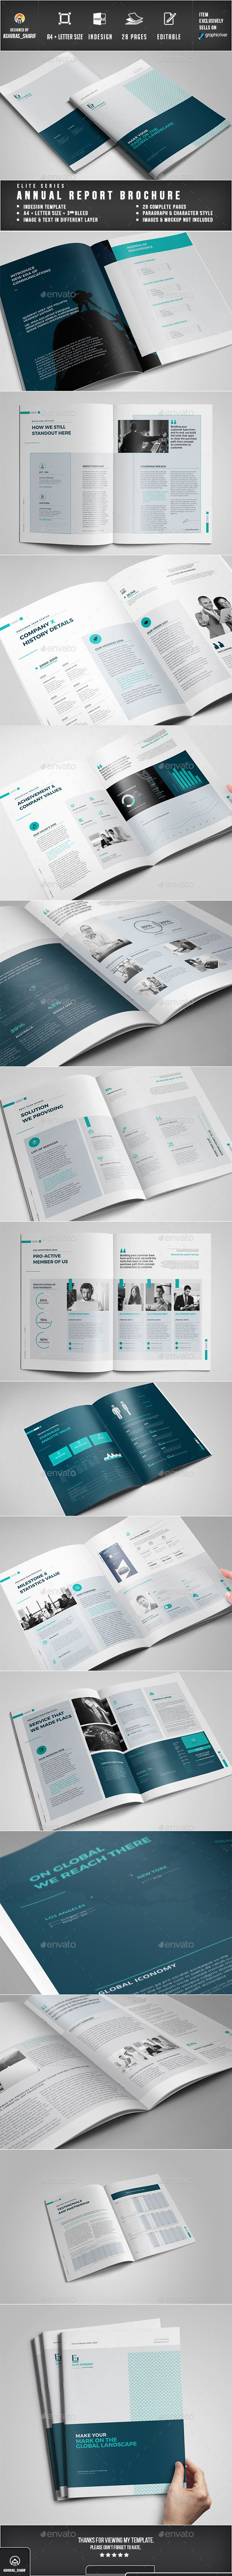 Annual Report Template InDesign INDD. Download here…